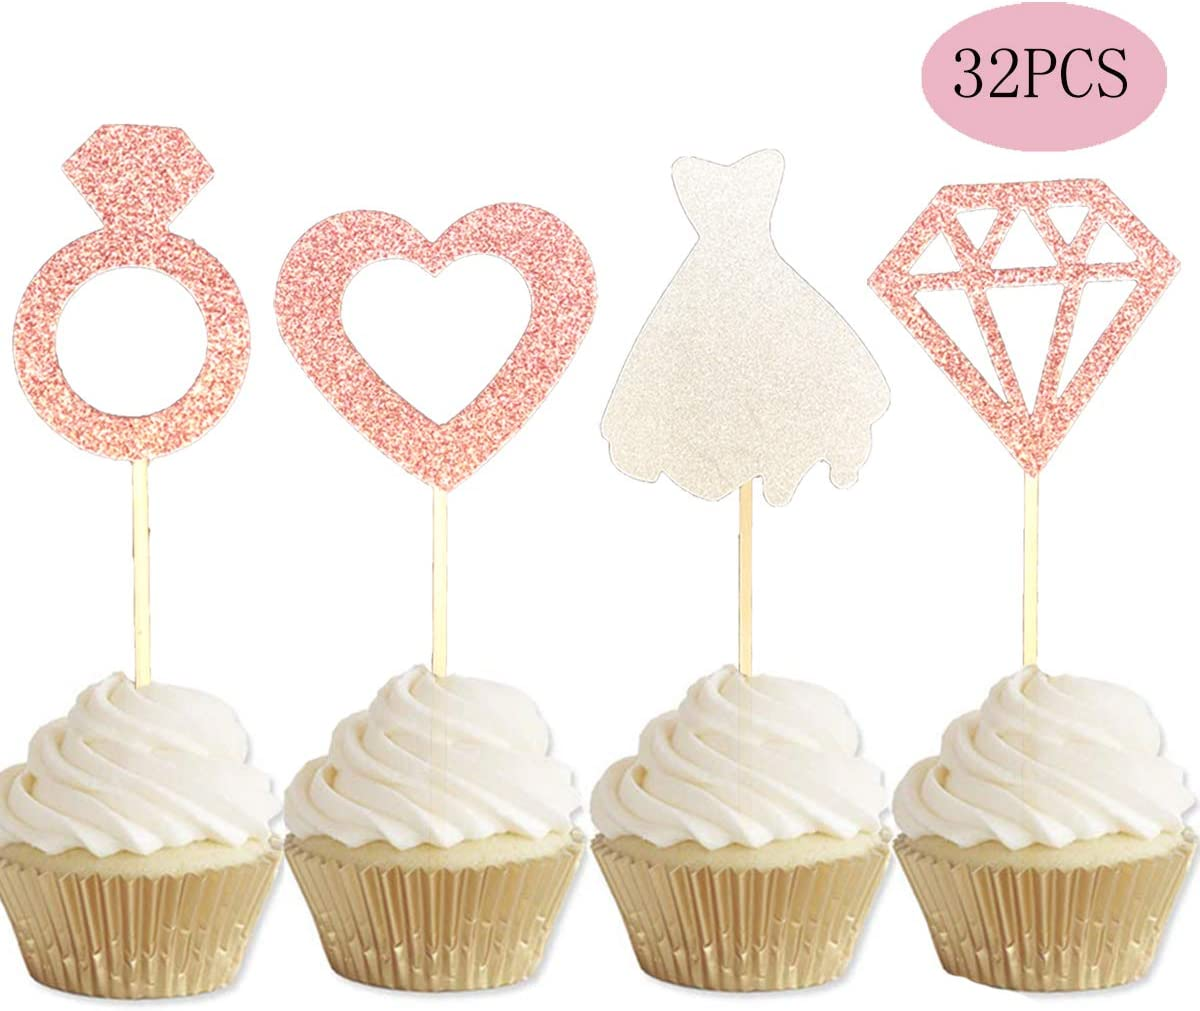 Valentine Party Decorations Supplies Engagement Bridal Shower Wedding Diamond Ring Cake Topper